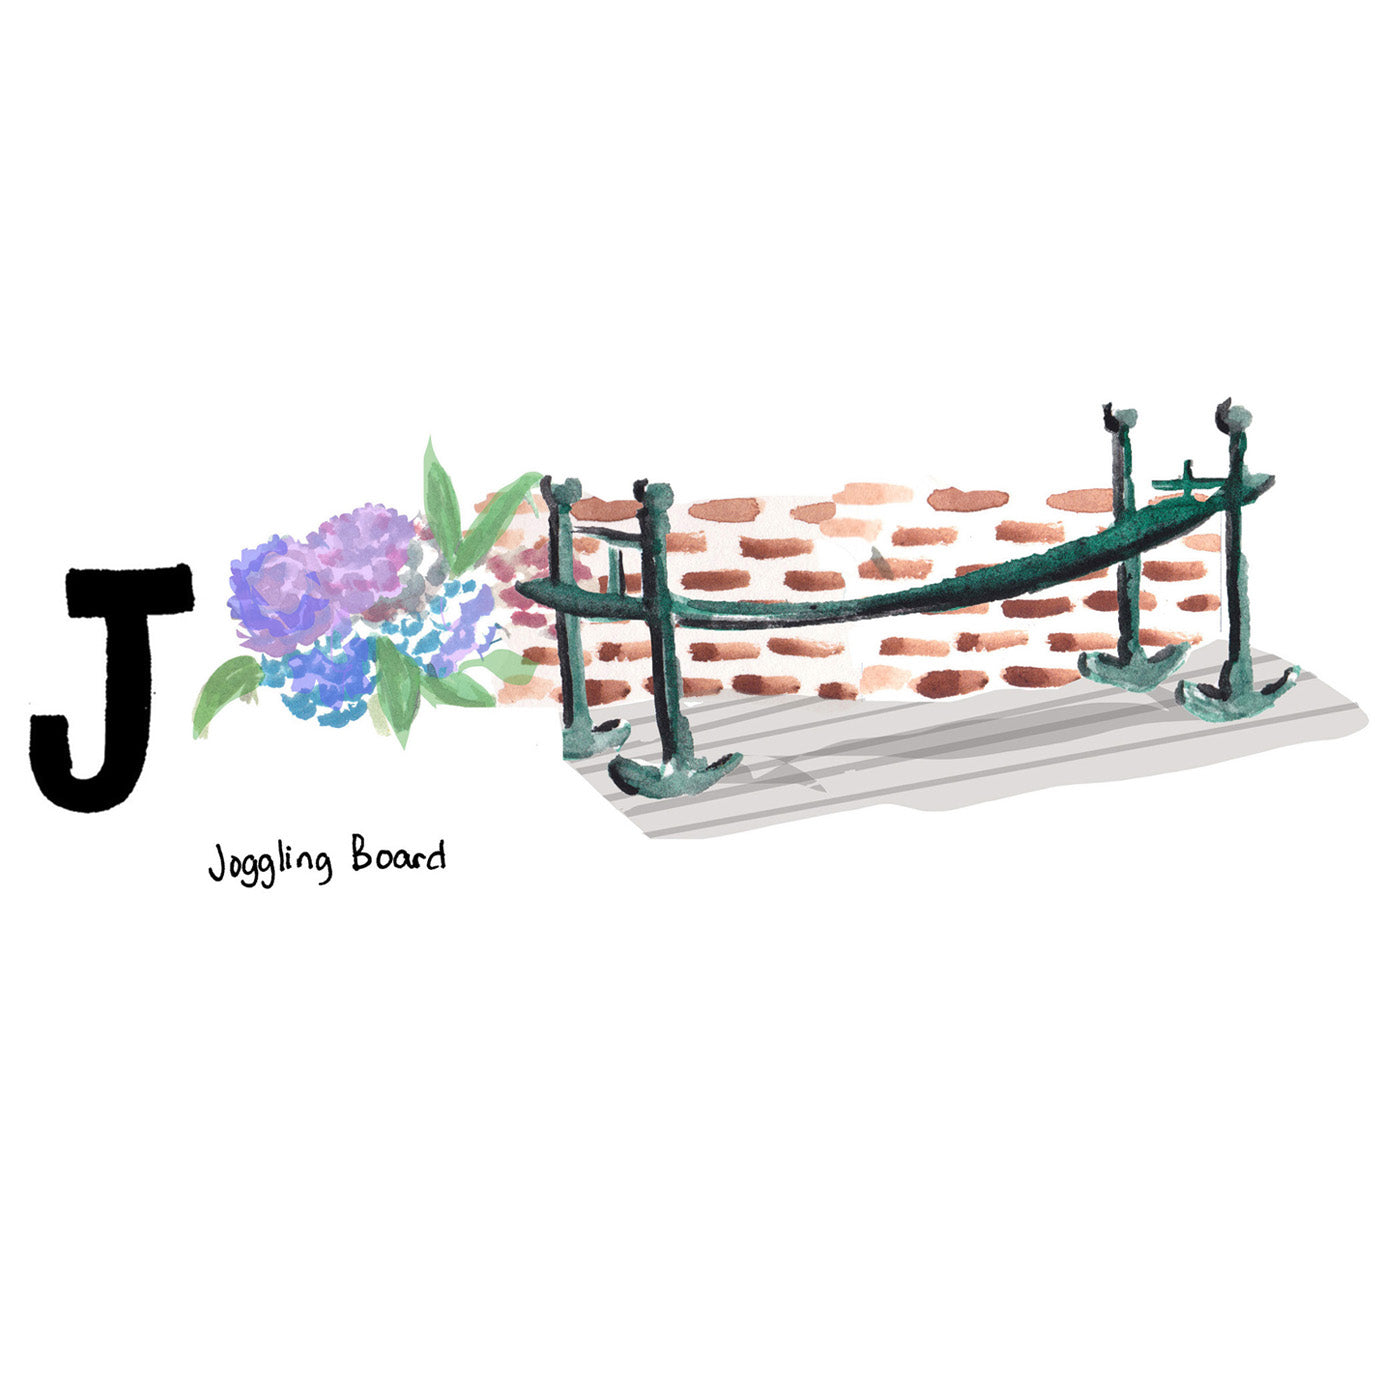 J is for Joggling Board. Traditionally painted Charleston green, the joggling board has been found on front porches and yards since the early 19th century. Many believed if you had a joggling board on your front porch you would never have an unwed daughter.